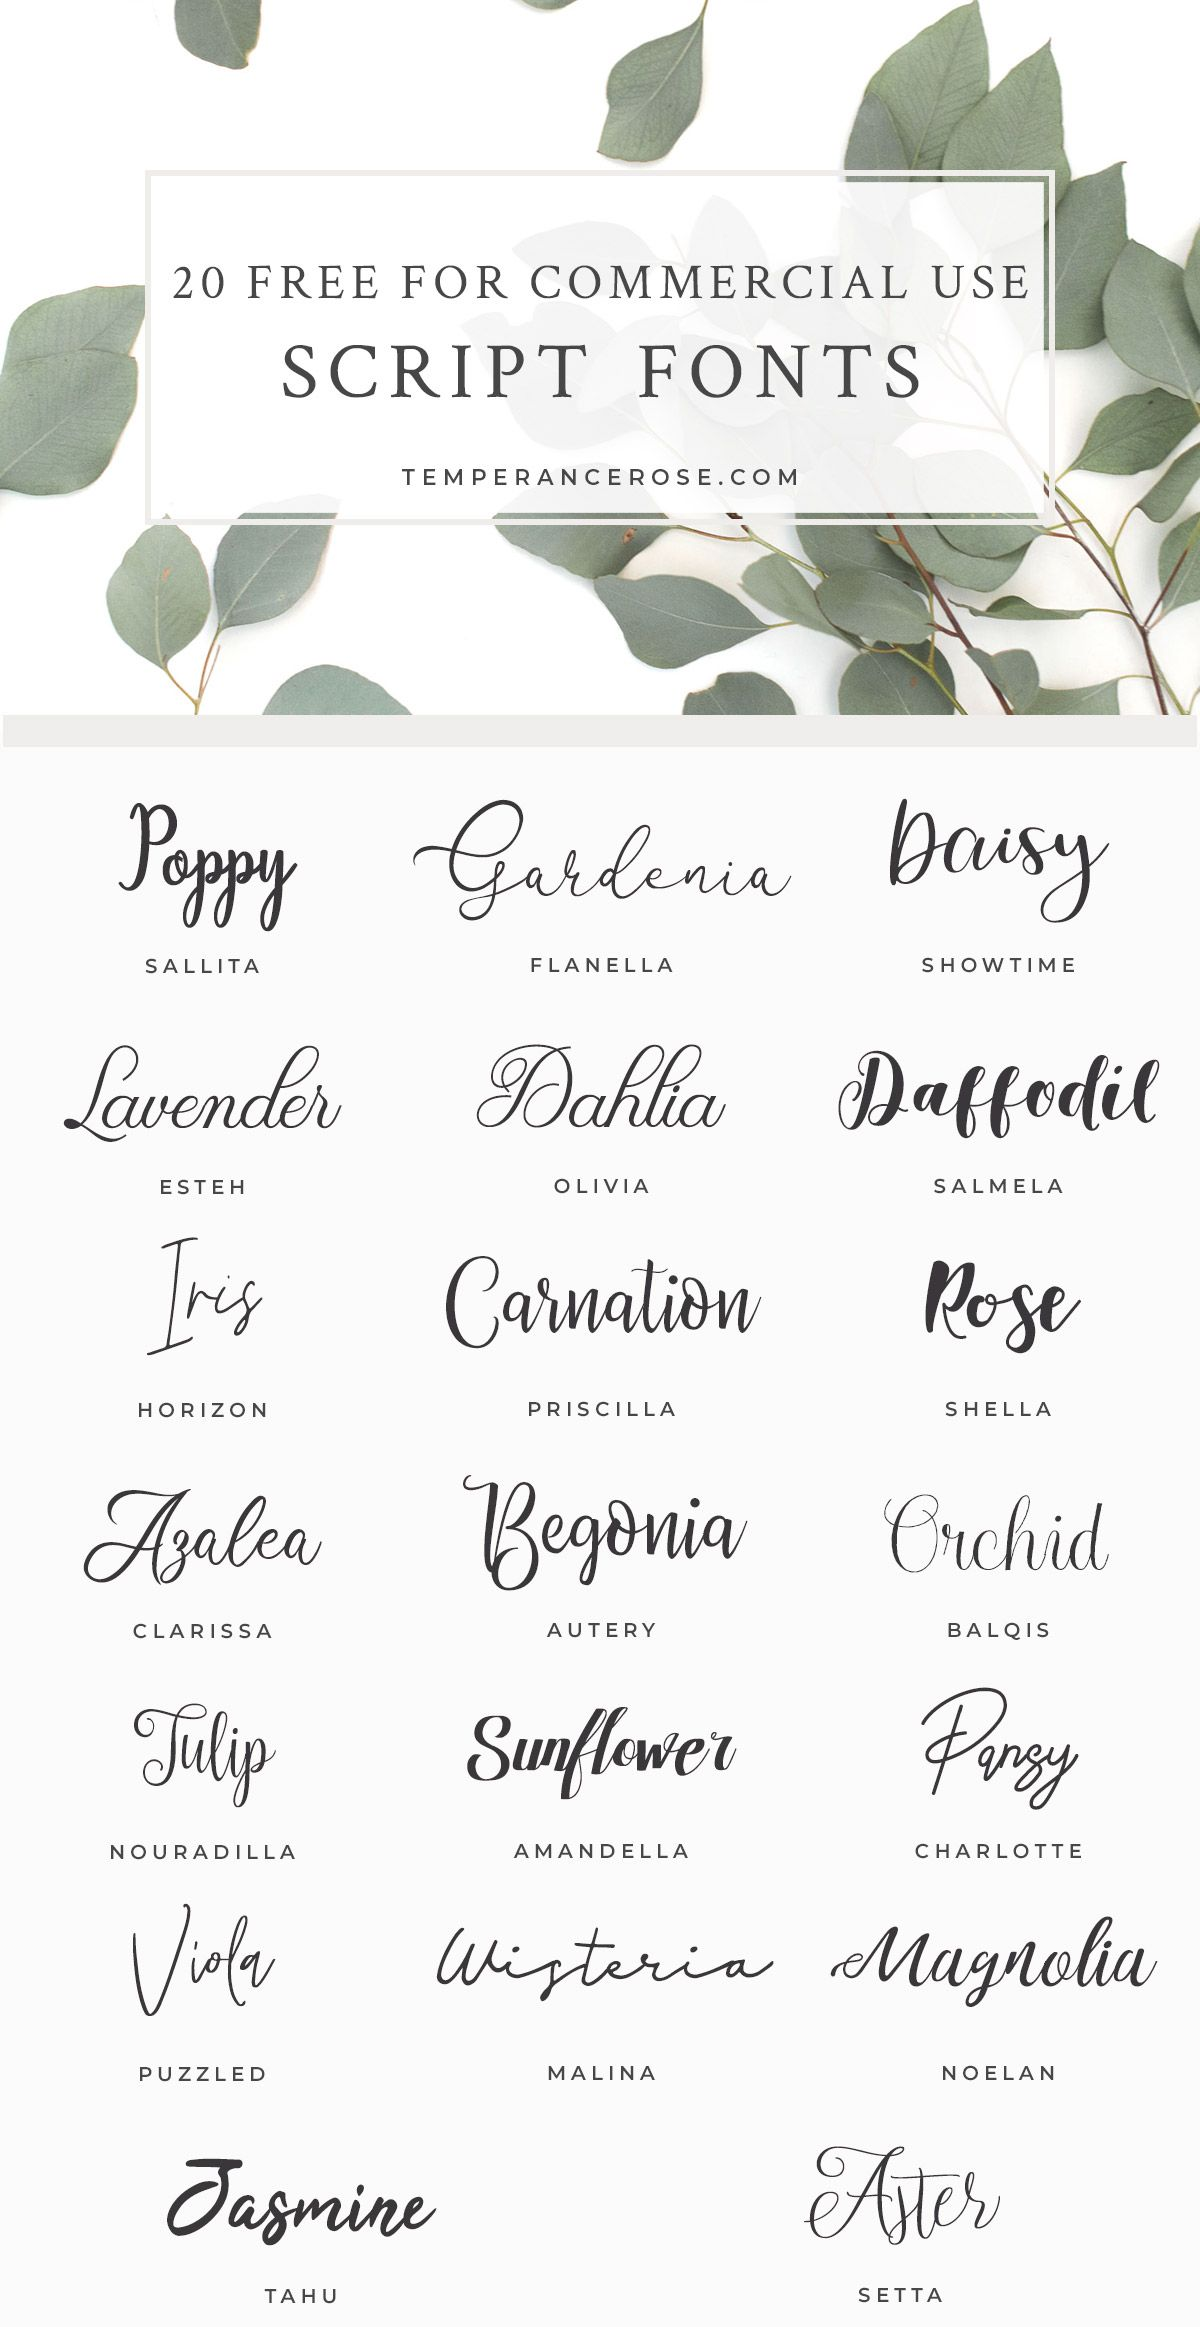 20 free for commercial use script fonts for your